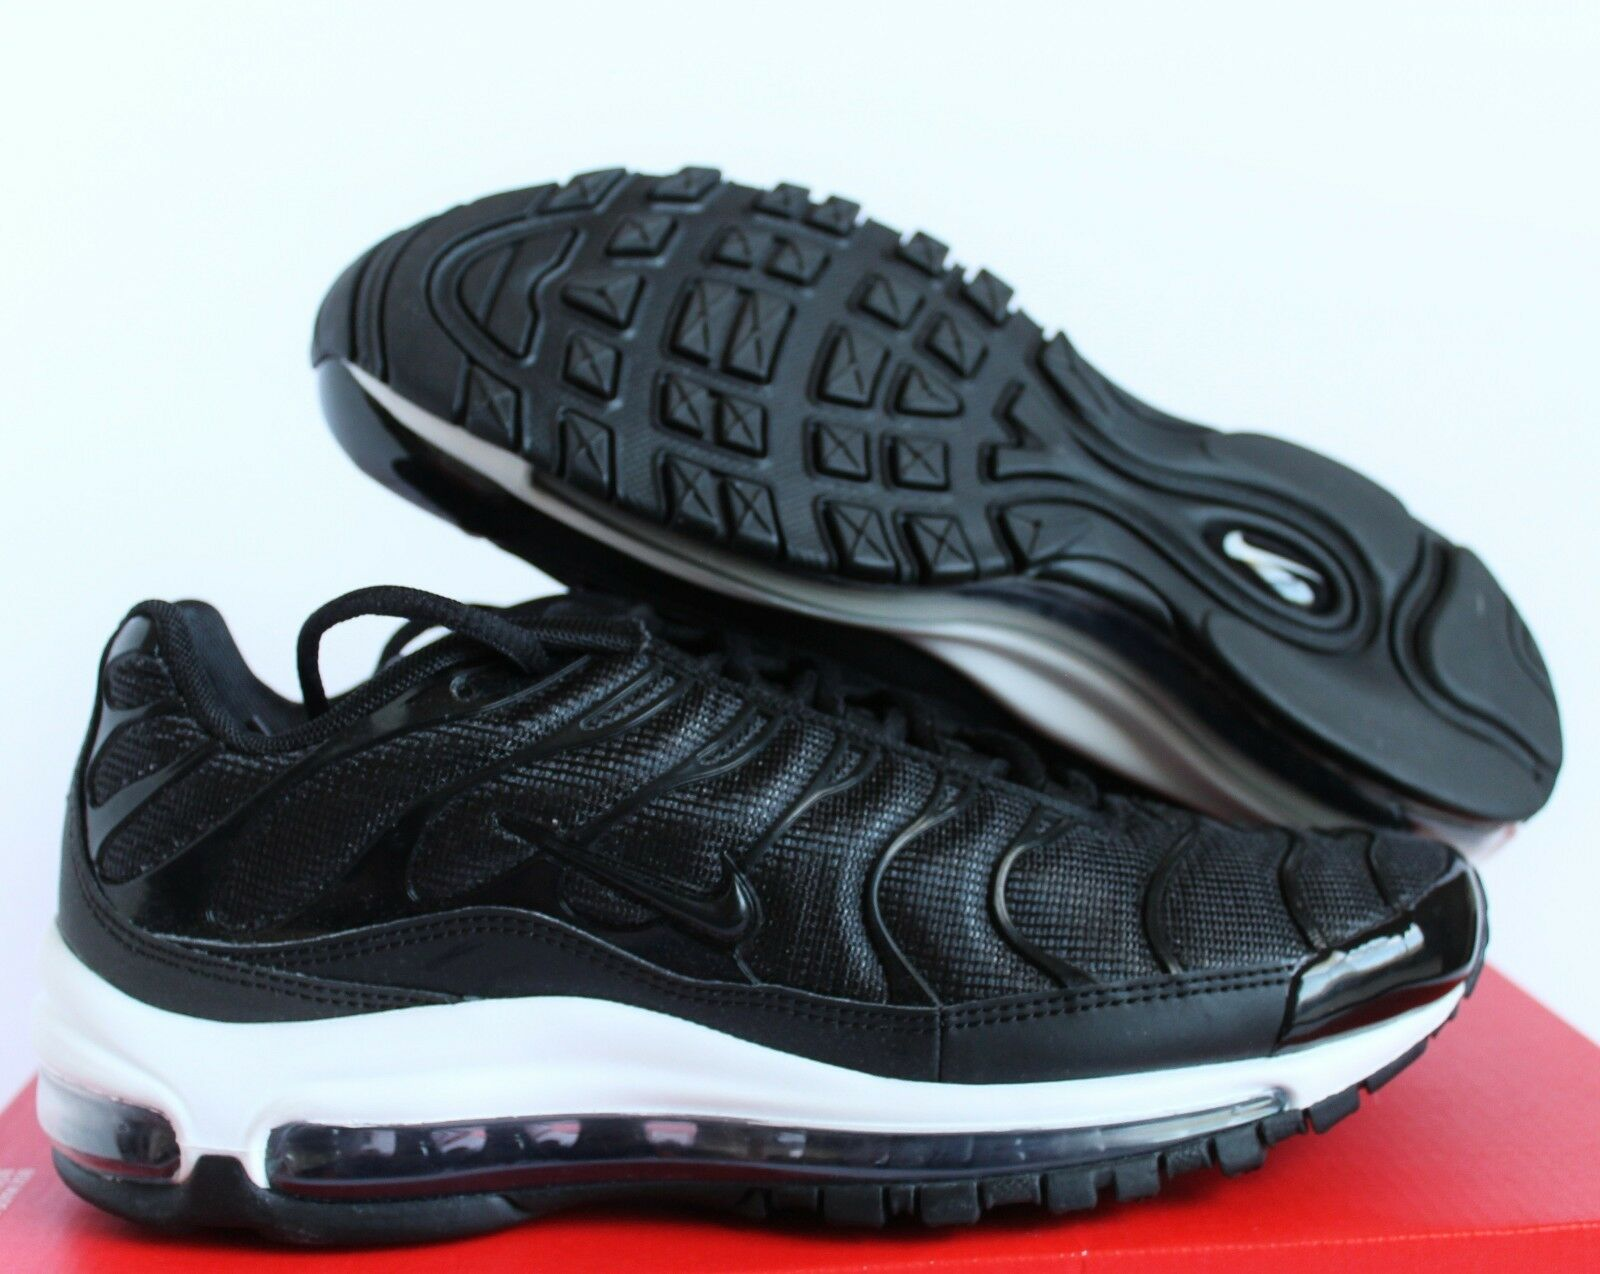 NIKE AIR MAX 97 / PLUS Noir -ANTHRACITE-blanc SZ 6.5